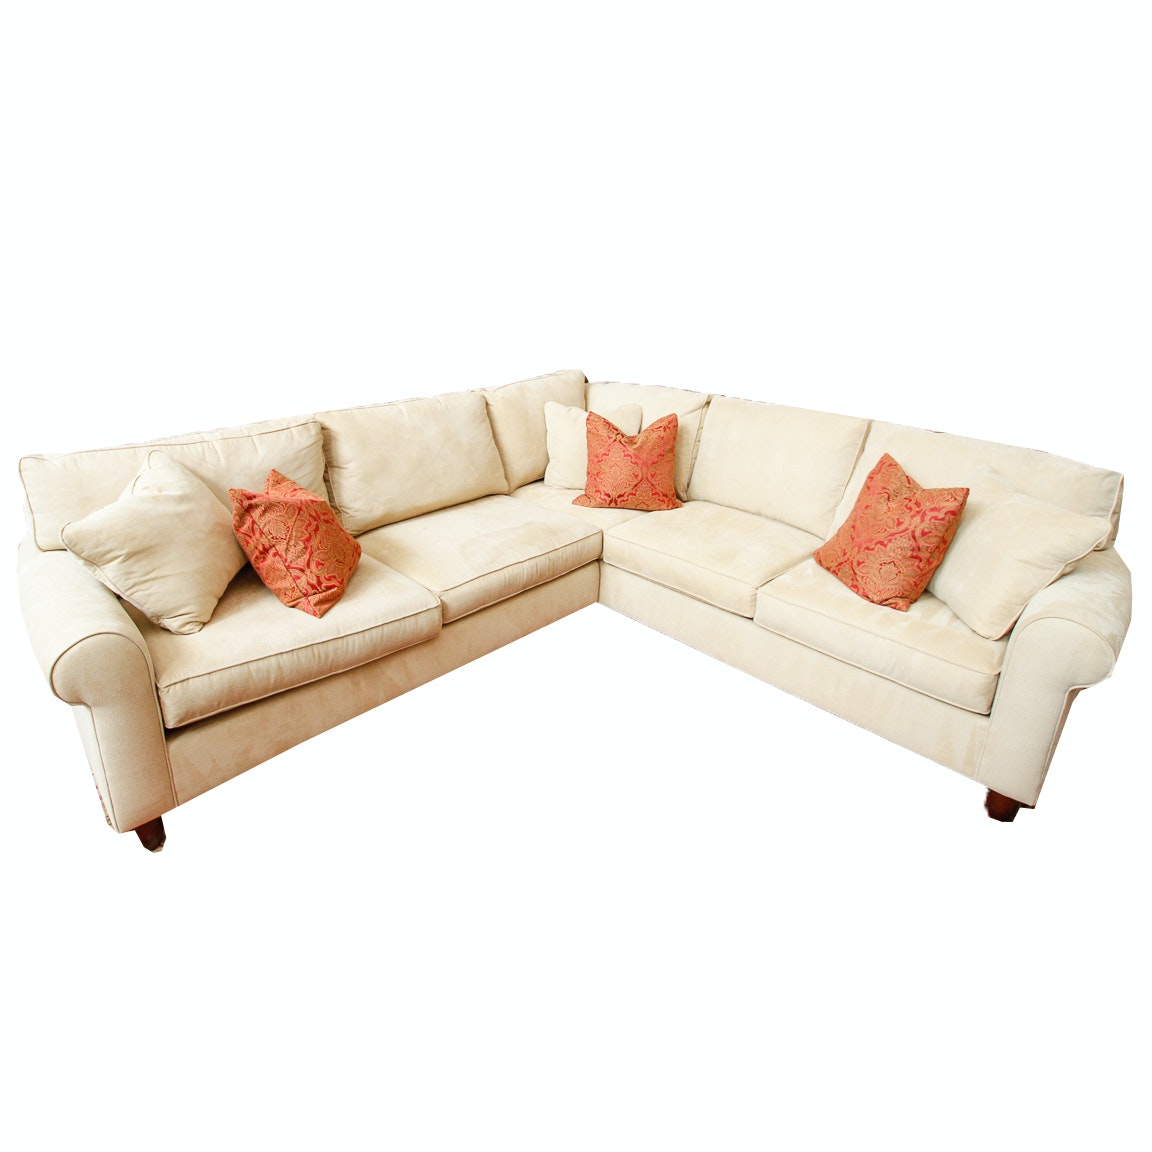 Cream Sectional Sofa by Havertys ...  sc 1 st  Everything But The House : cream sectional sofa - Sectionals, Sofas & Couches